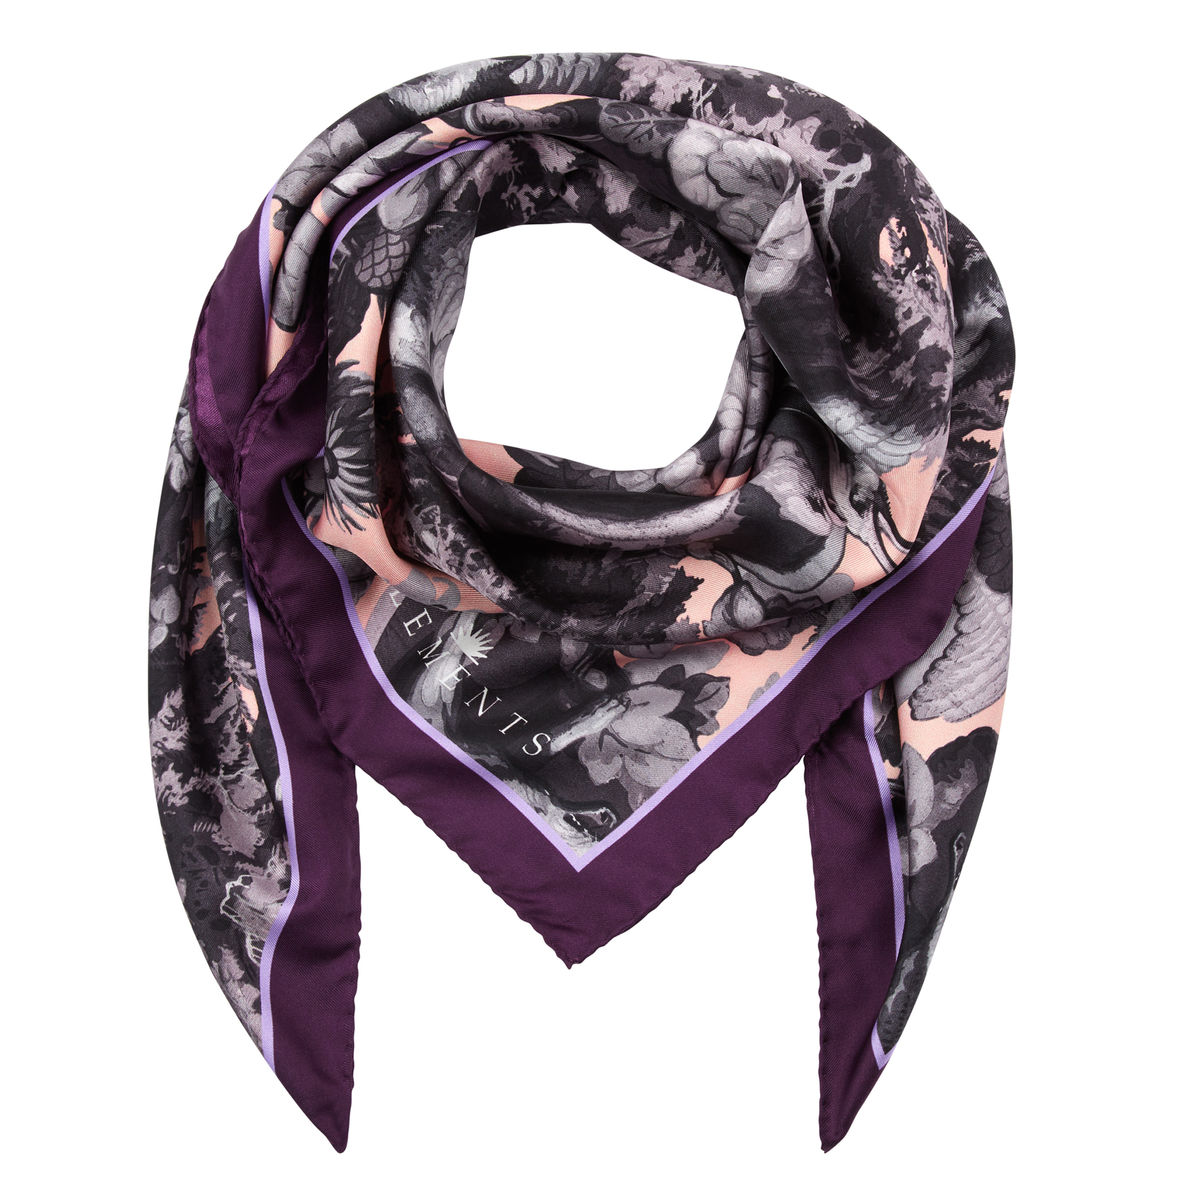 Medium scarf in Białowieża Forest Iced Lilac print - product images  of